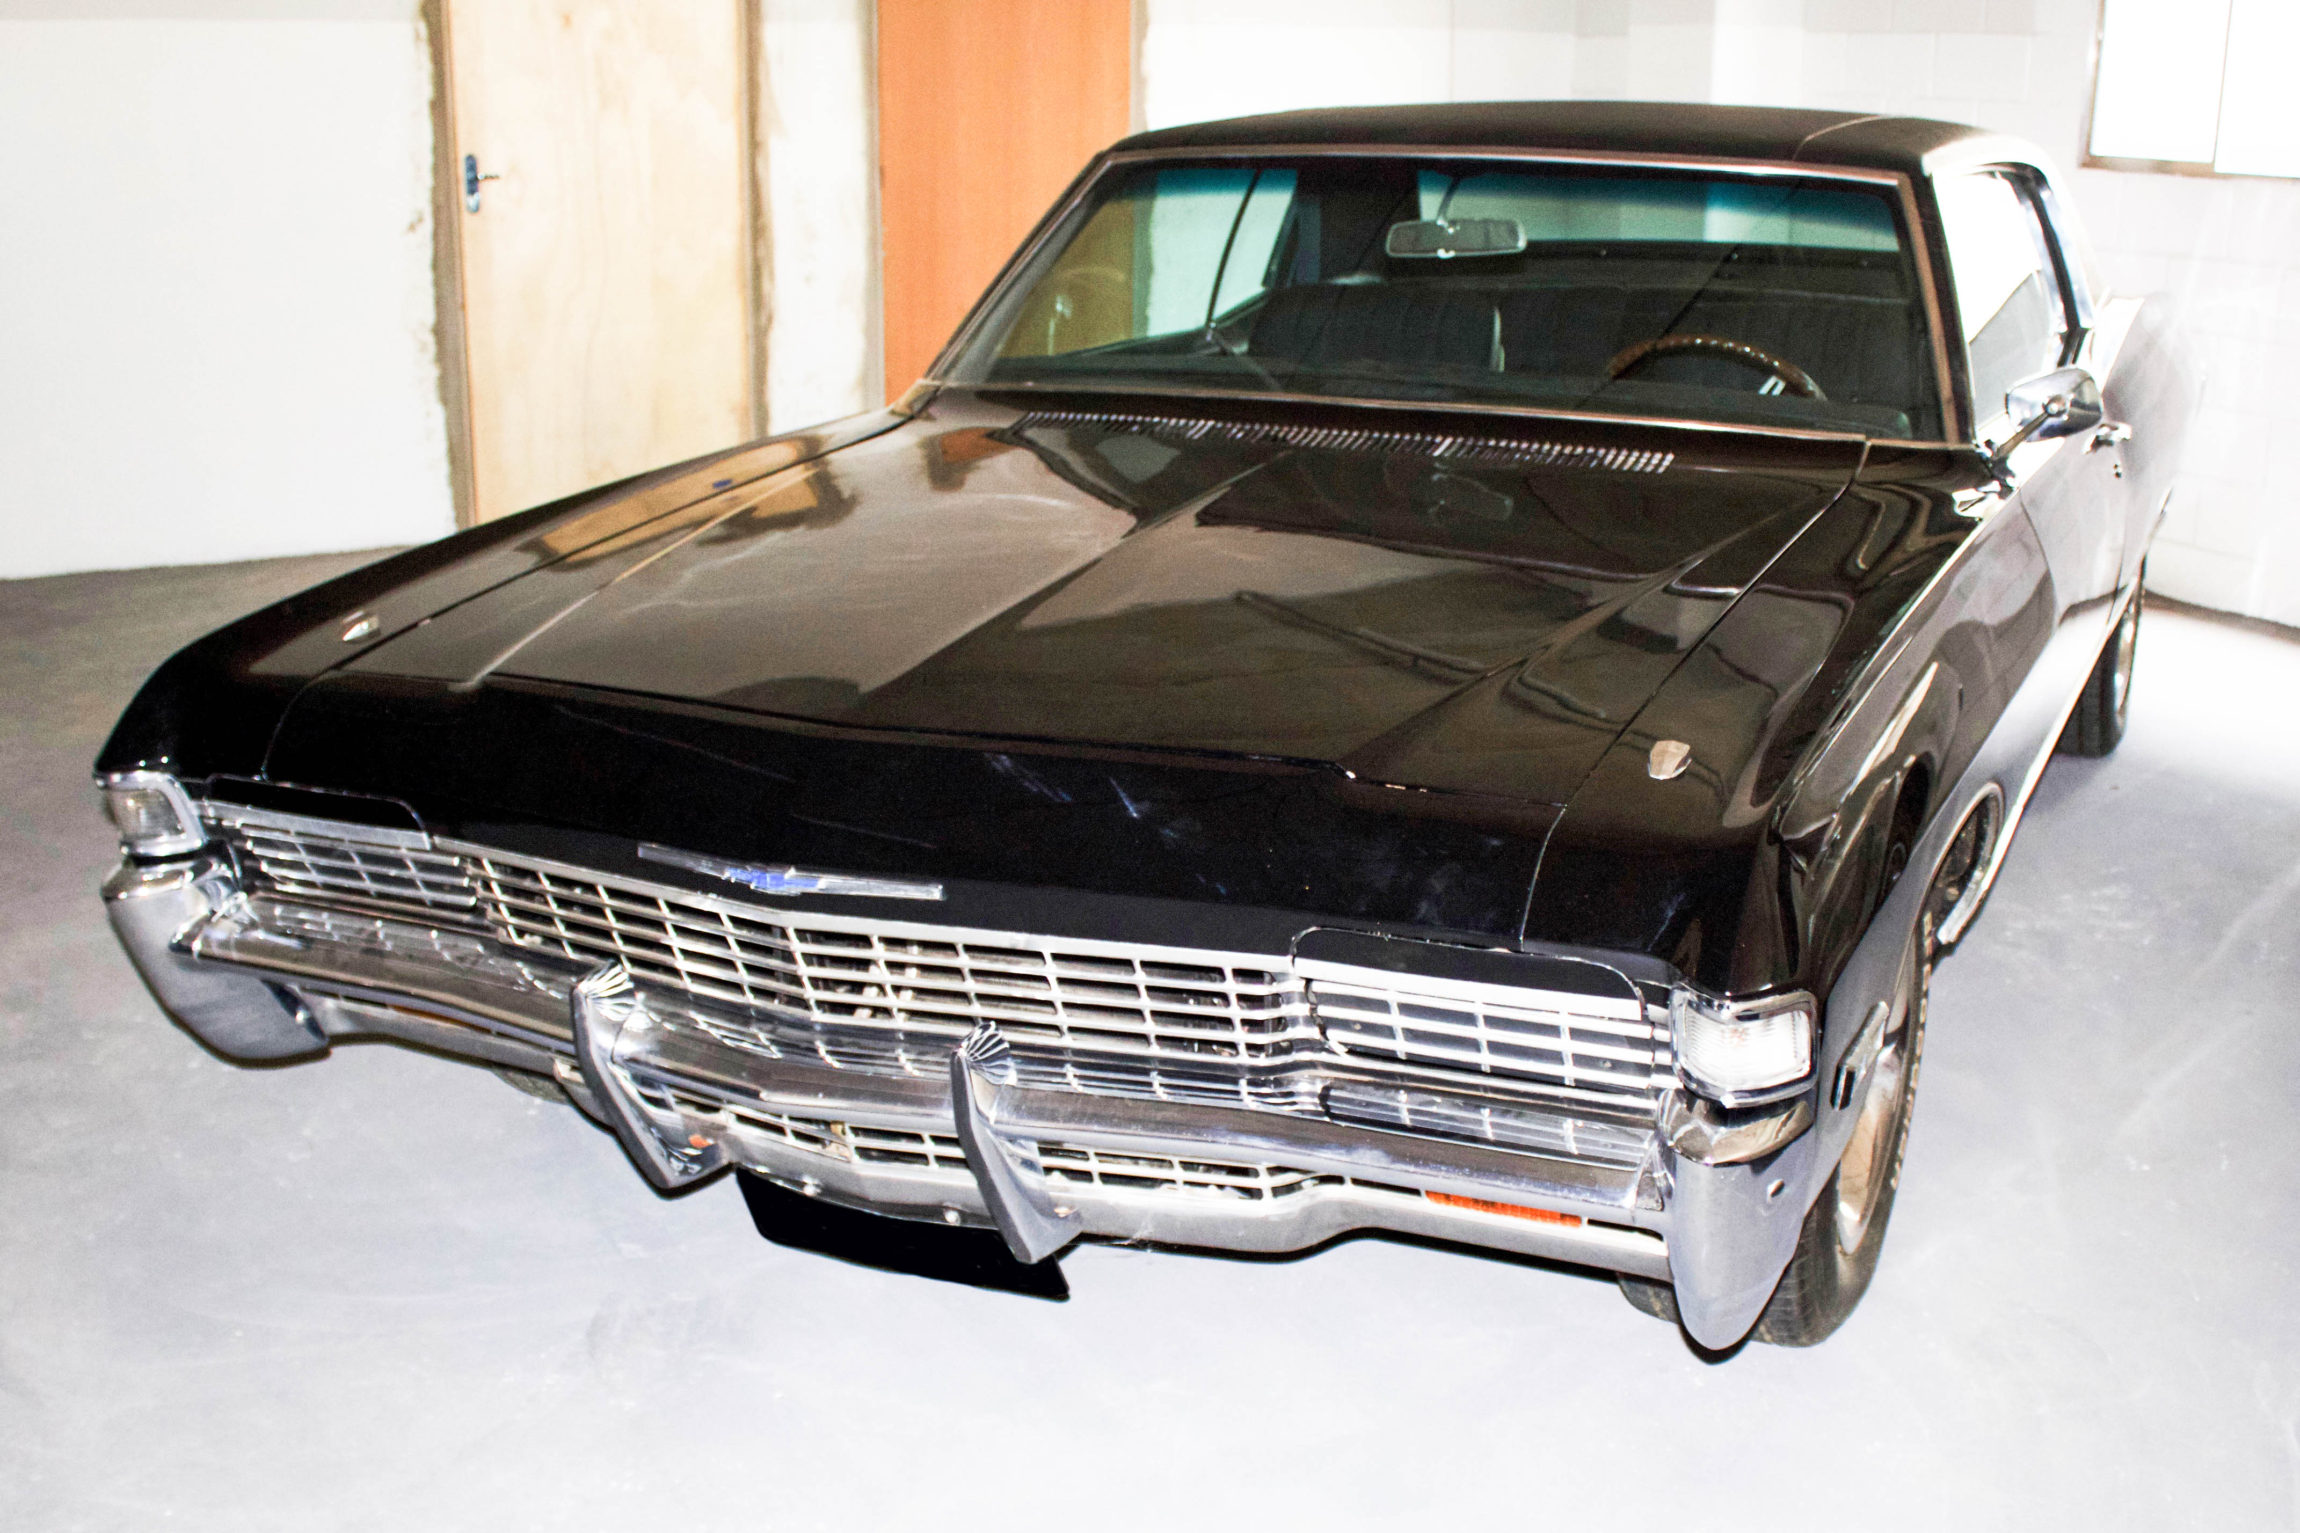 1968 Chevy Caprice Master Big Block 396